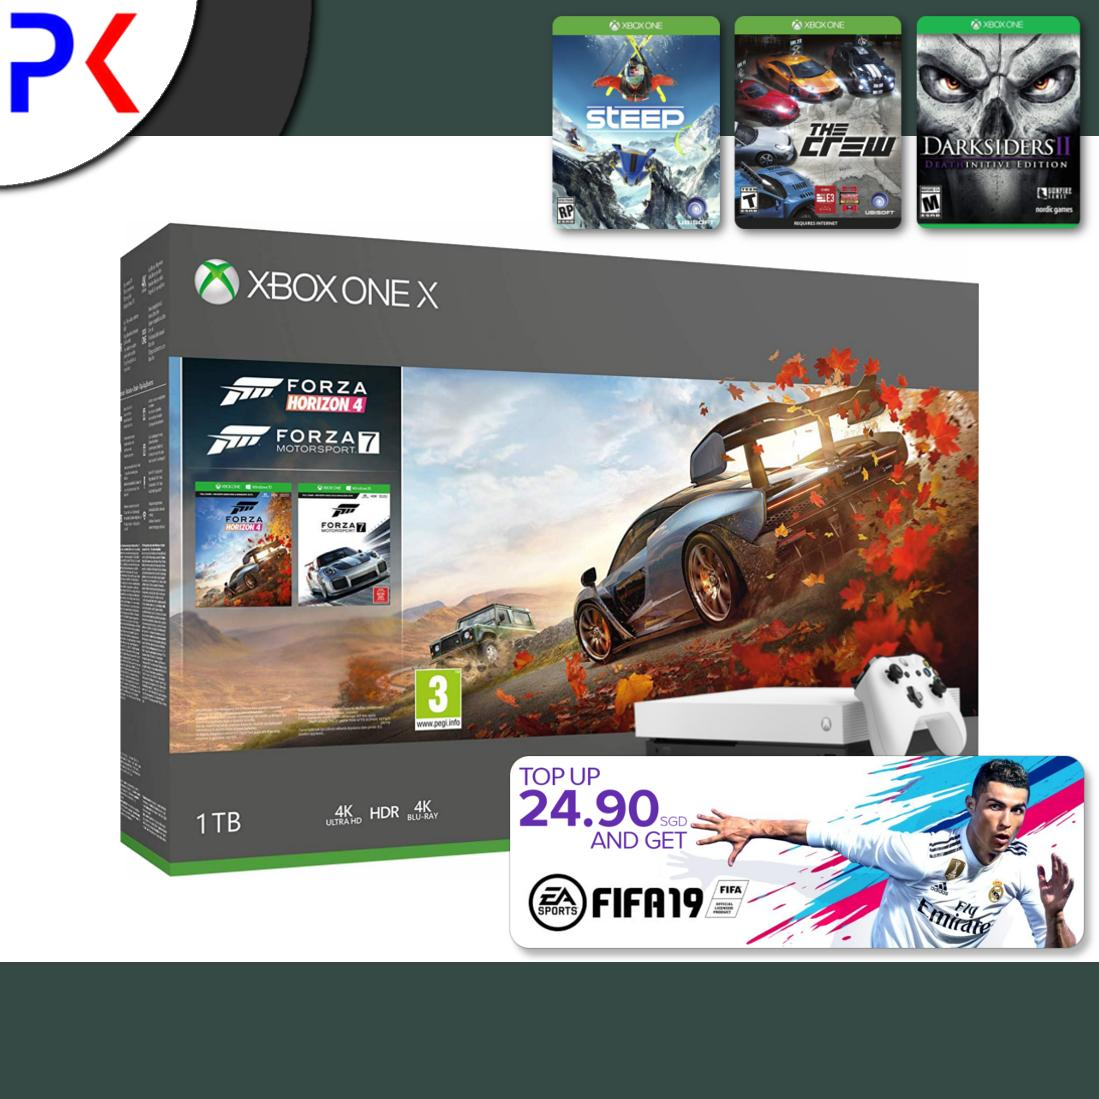 Xbox One X 1TB (ASIA) White Special Edition Forza Horizon 4 Bundle + 3 Free Games